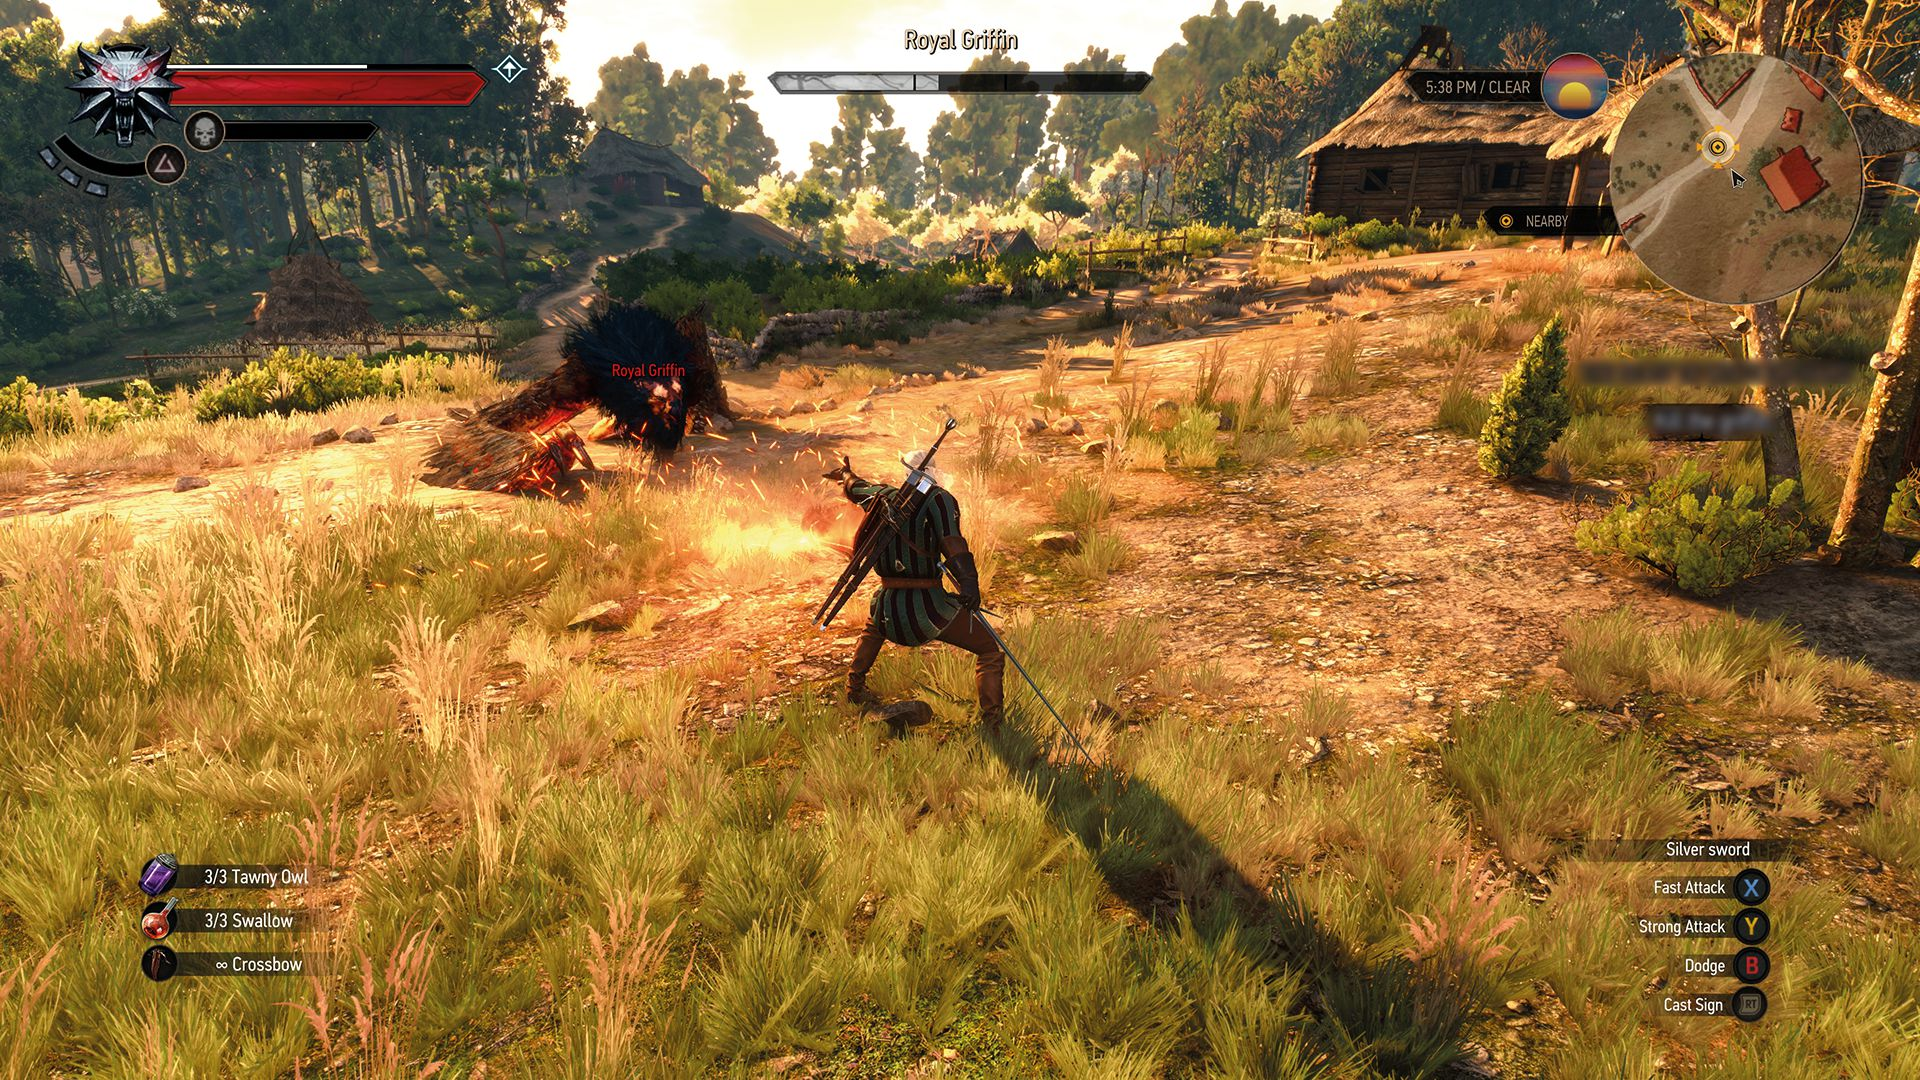 the_witcher_3_wild_hunt_gonna_be_crispy_fried_royal_griffin_on_the_menu_tonight_1430900901